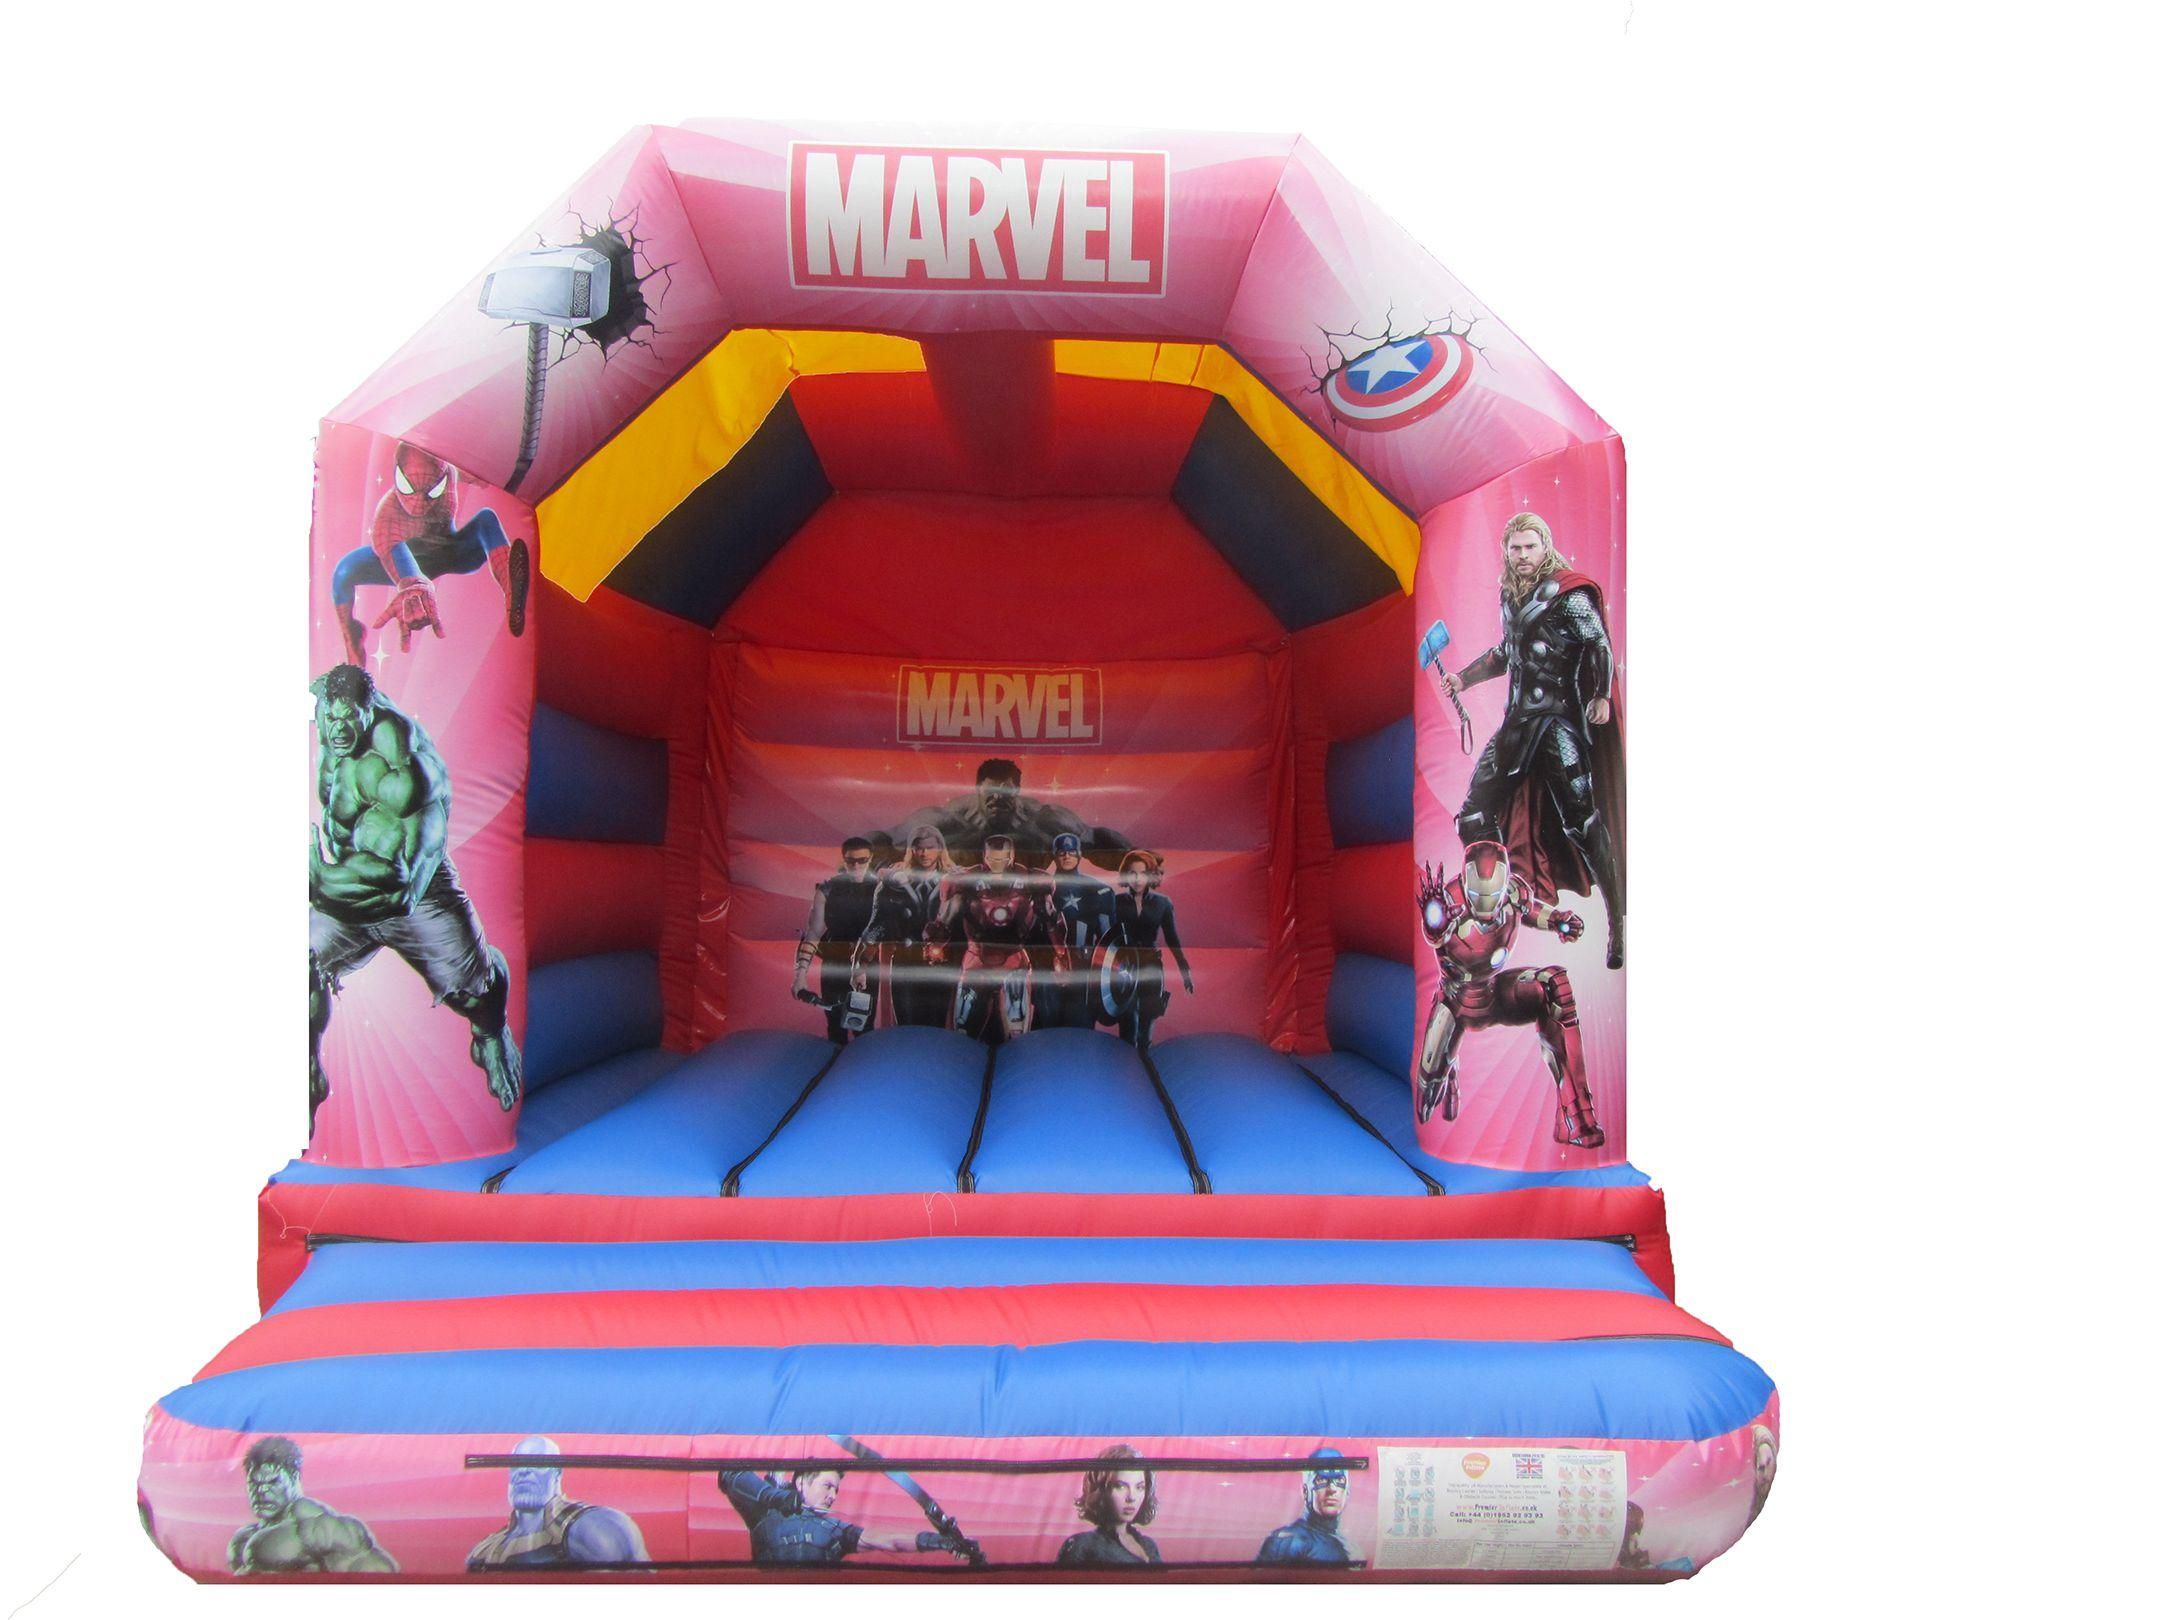 Superhero Themed Bouncy Castle Suitable for Adults and Children